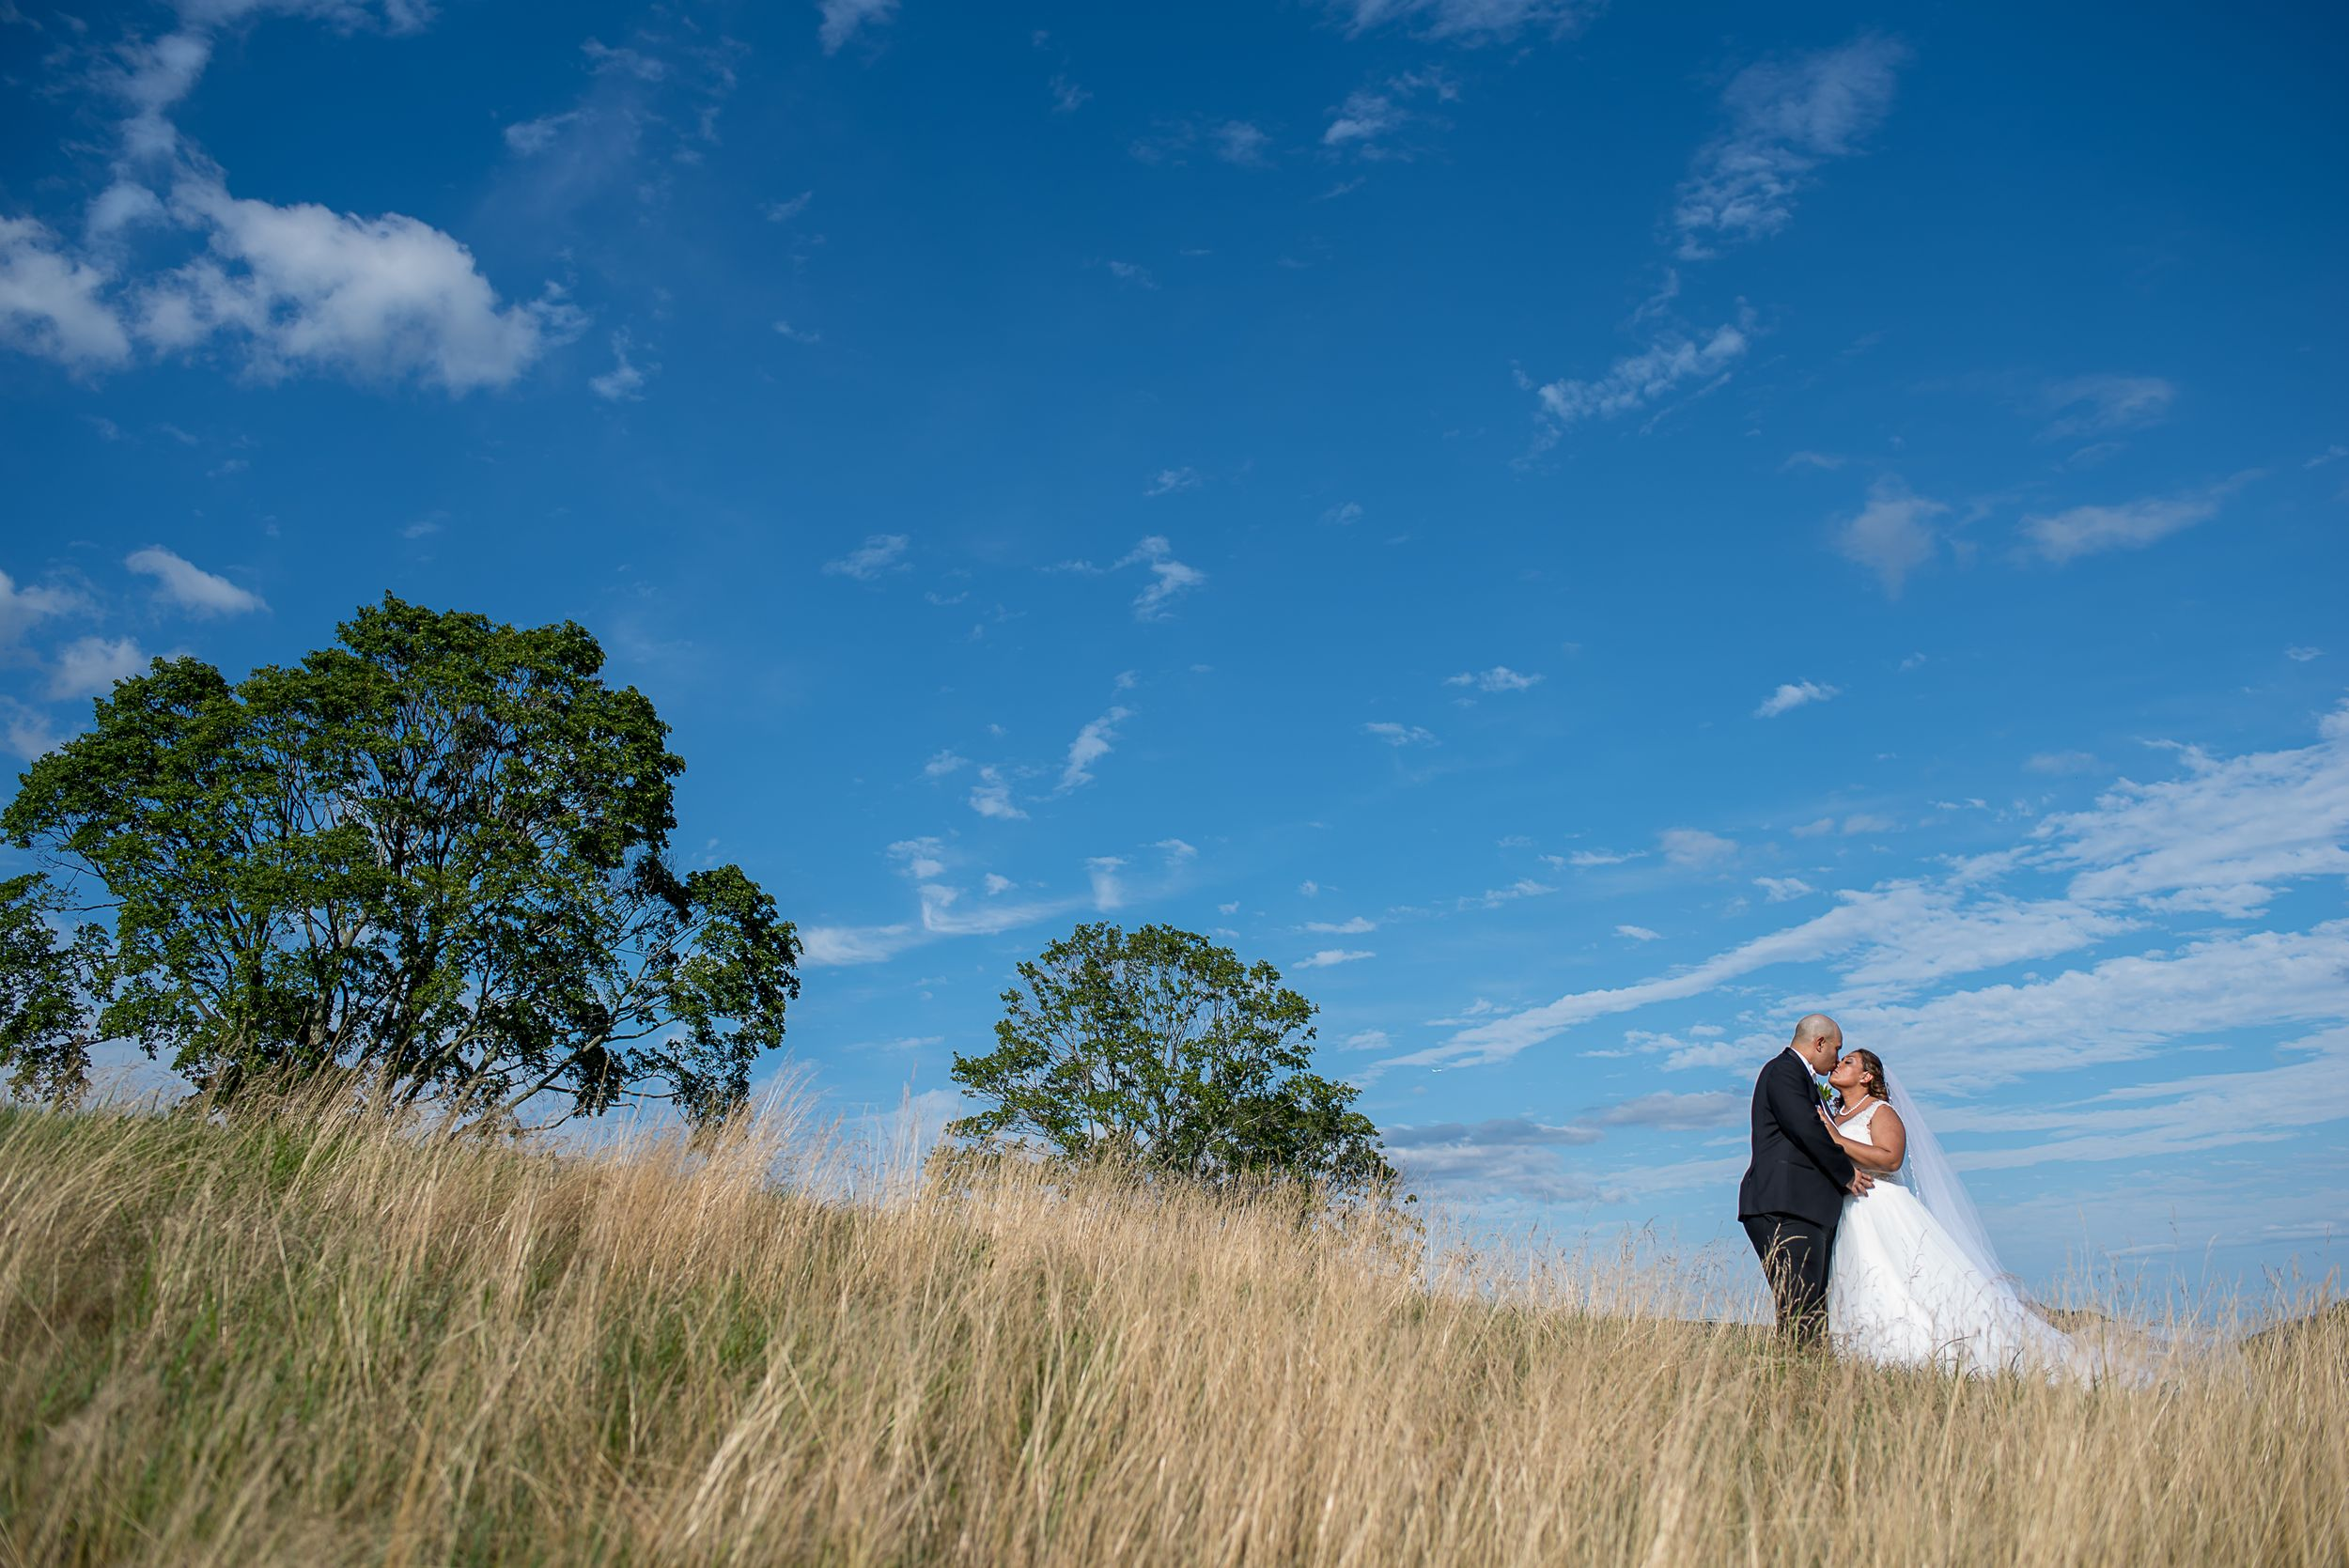 epic photo of wedding couple embracing on hillside on a Northern New Jersey golf course with bright blue sky and clouds